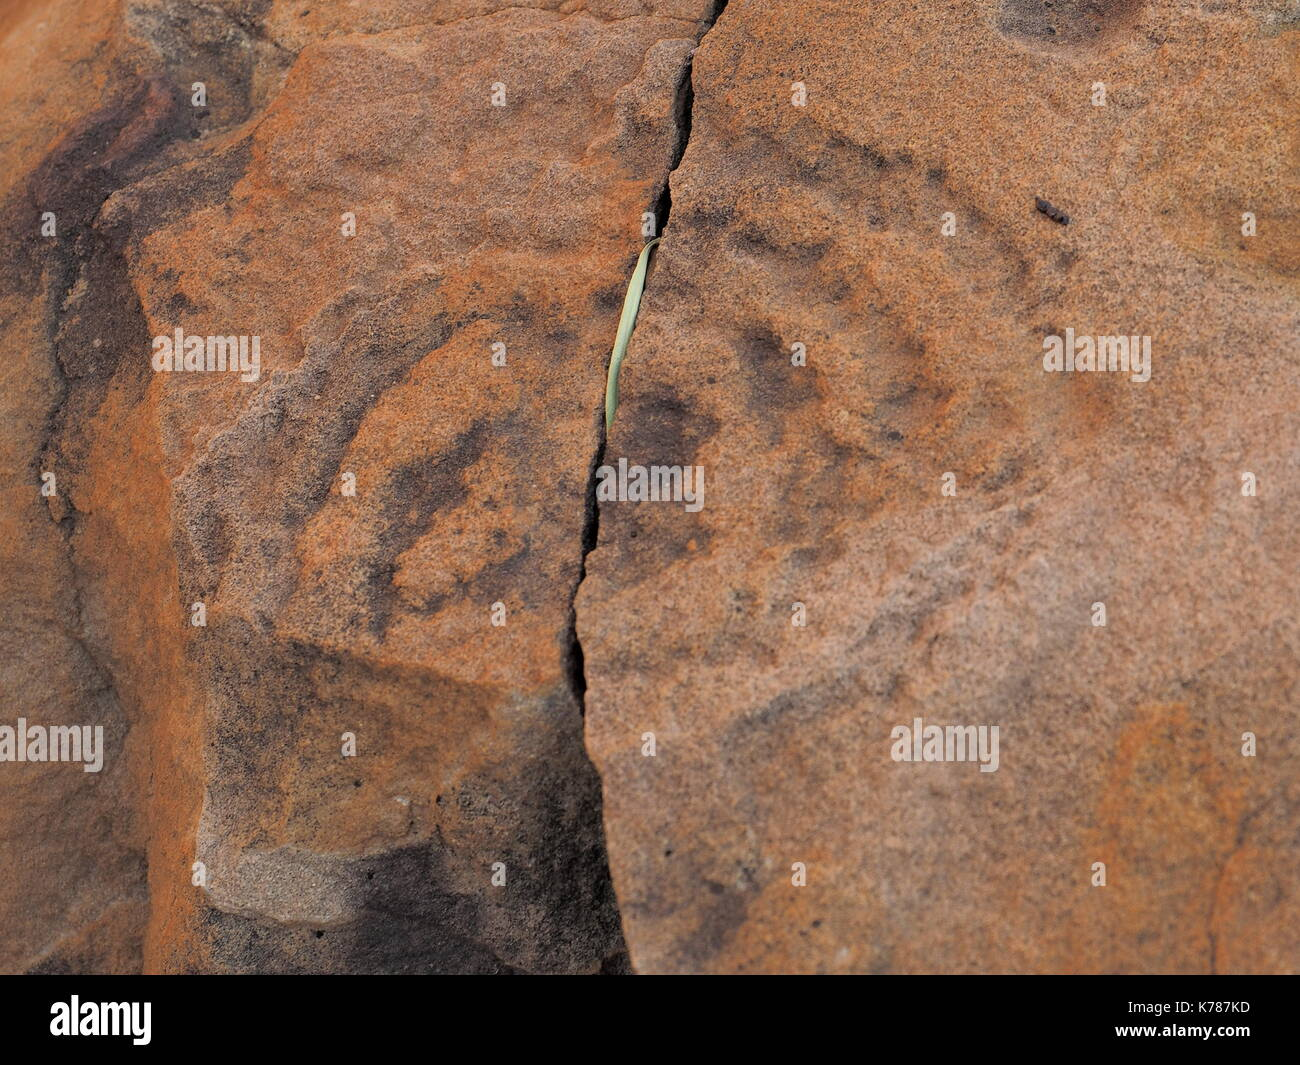 Rock carving Petroglyph on red rock surface at N'Dhala Gorge, east MacDonnell ranges near Alice Springs, Northern Territory, Australia 2017 - Stock Image